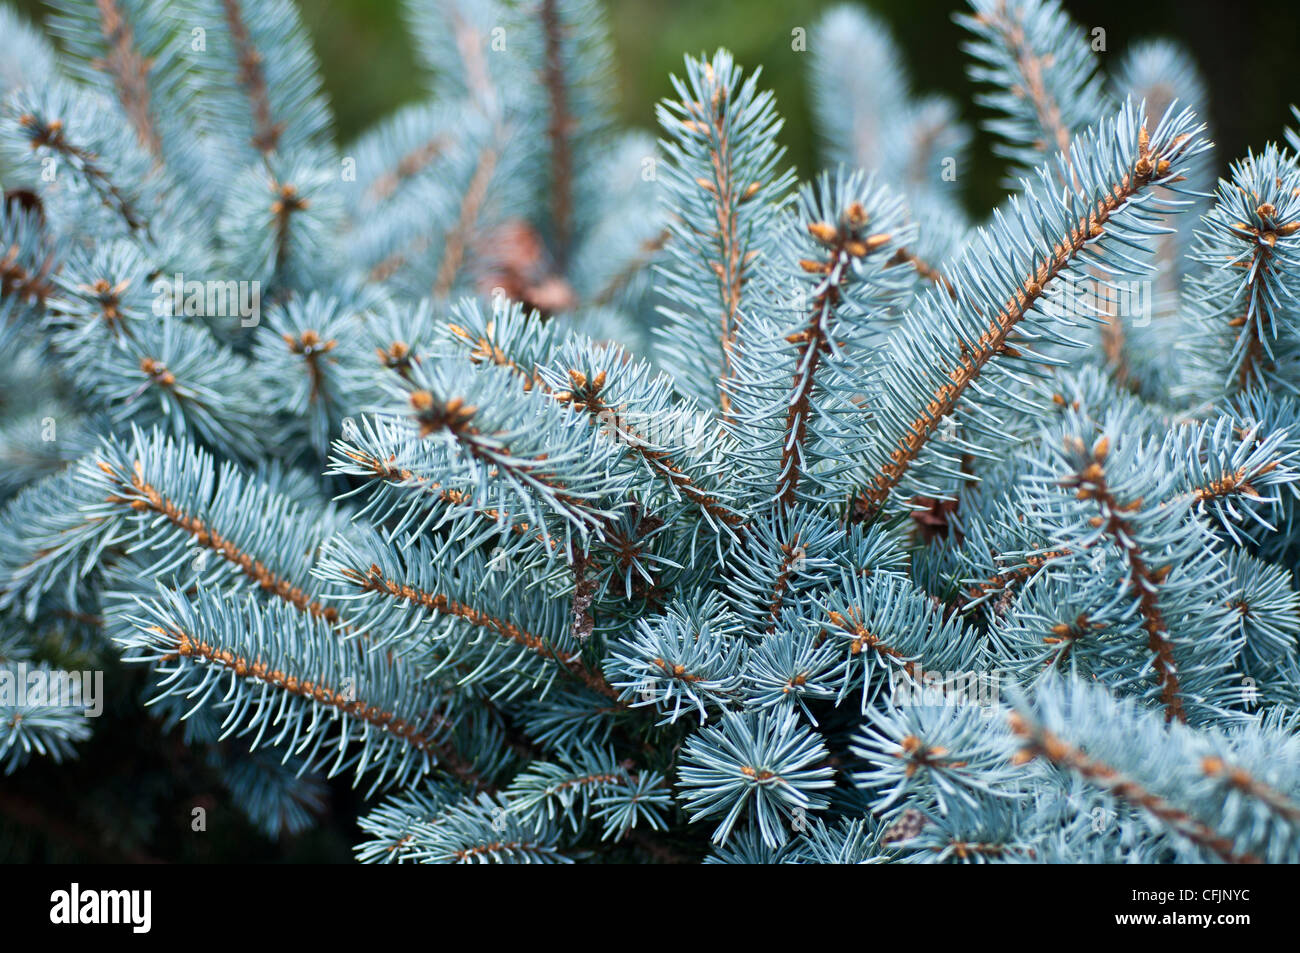 Silver blue conifers of Colorado Spruce, Picea Pungens f Glauca var Montgomery - Stock Image